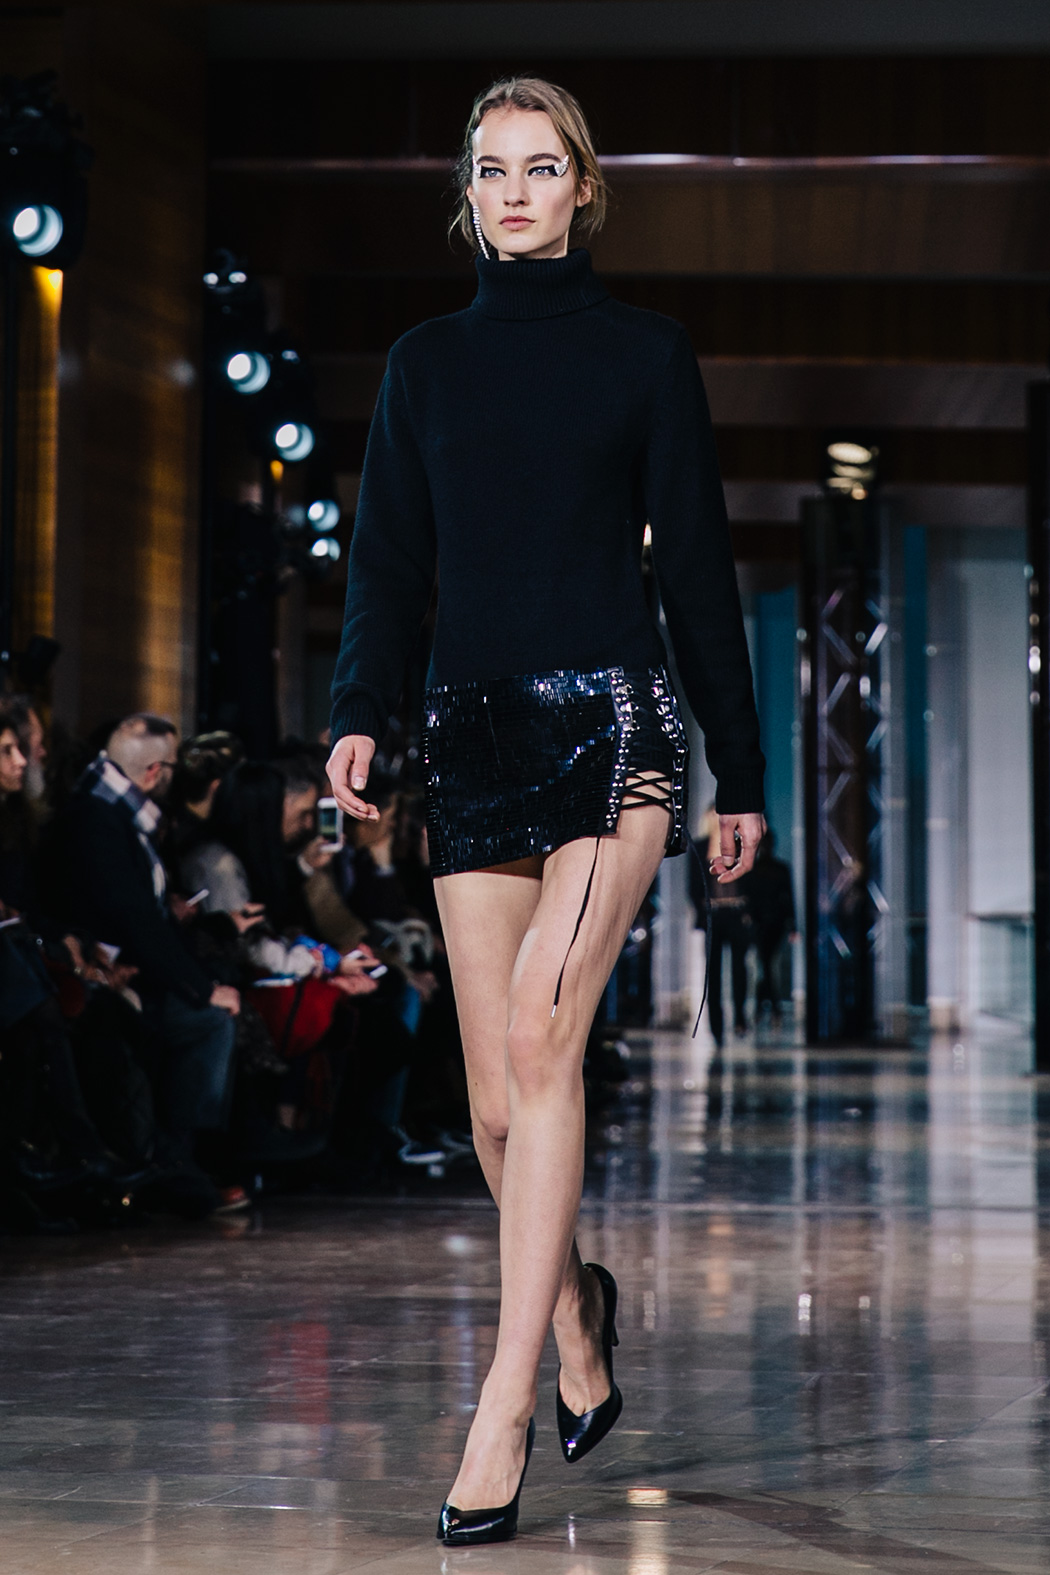 Paris_Fashion_Week-PFW-Anthony_Vaccarello_Fall_2016-Runway-8